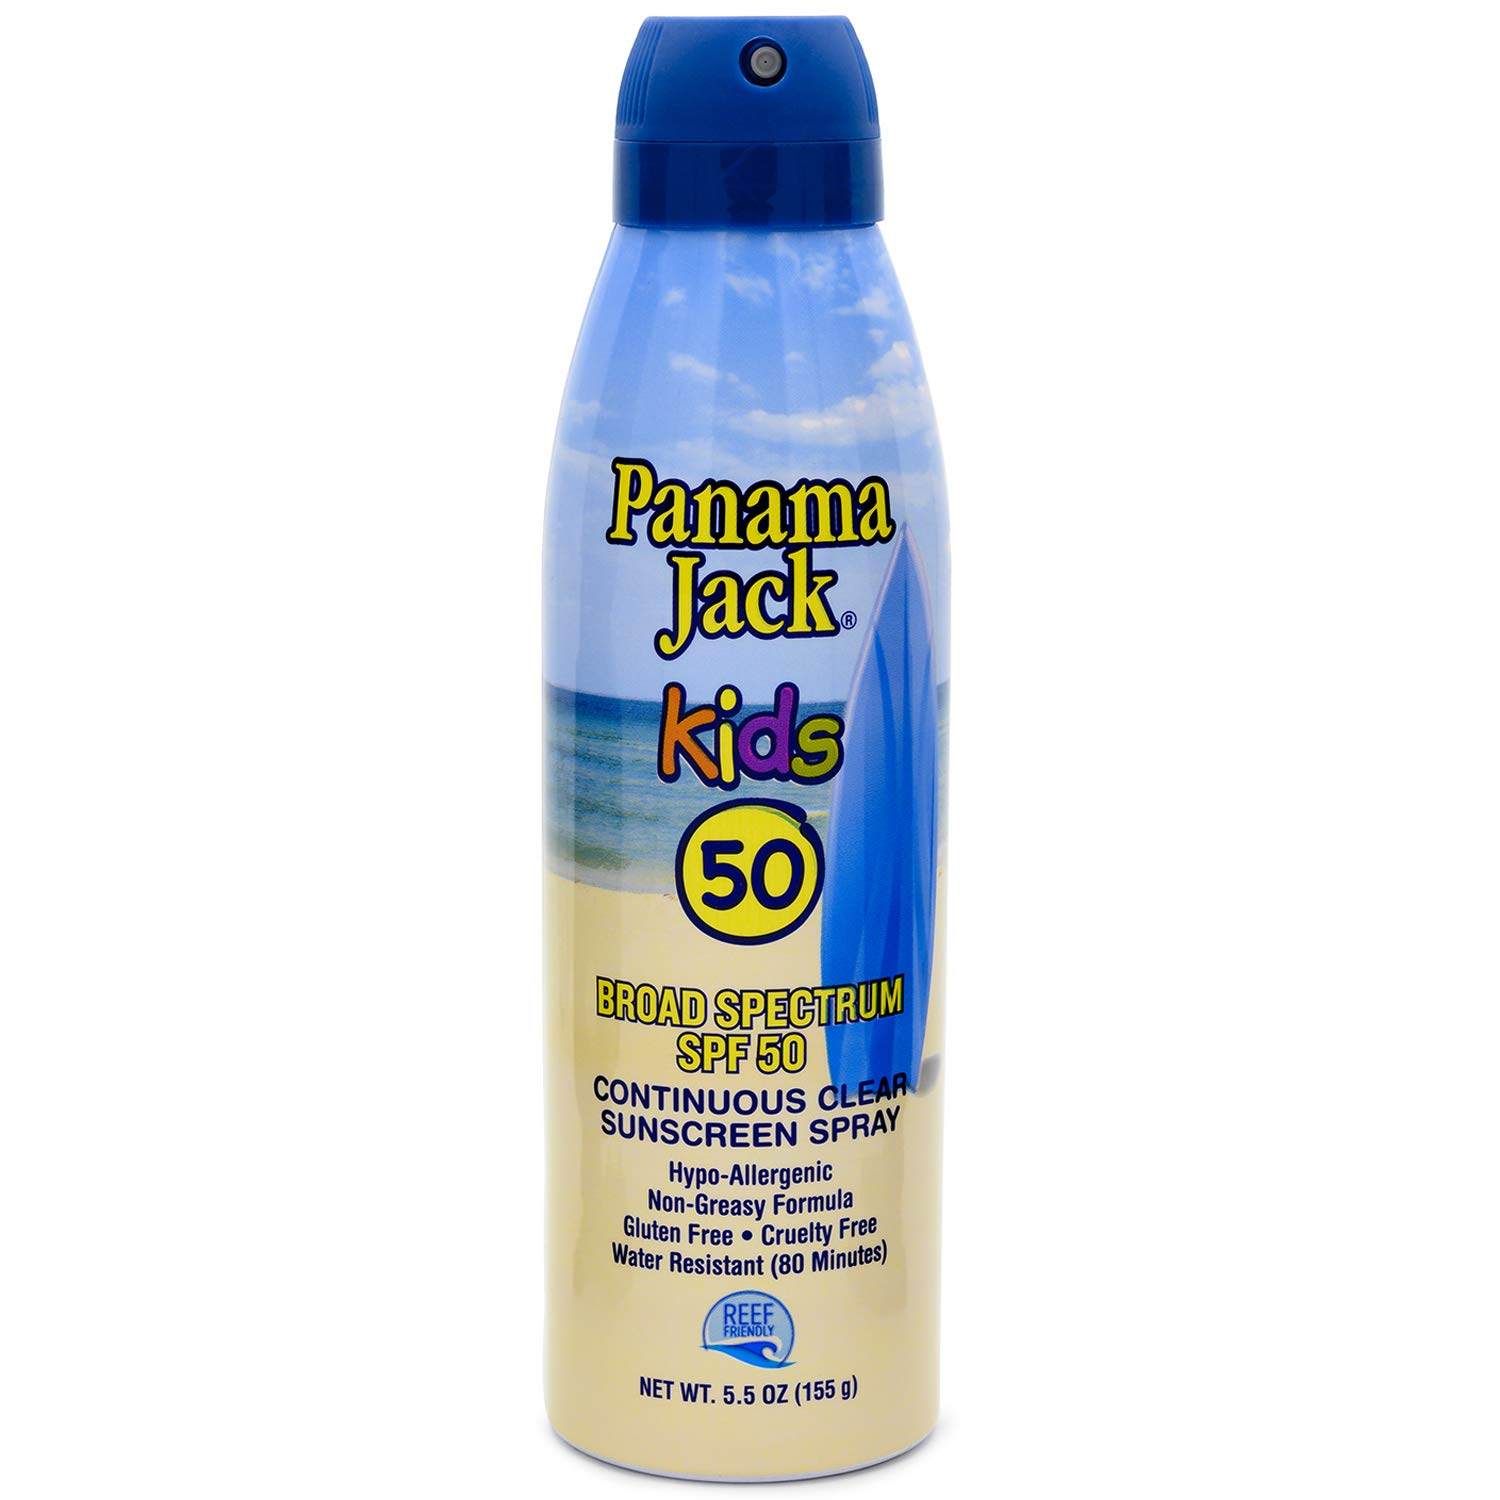 Panama Jack Baby and Kids Sunscreens Multi-Packs (Pack of 6, Continuous Spray Kids Sunscreen) by Panama Jack